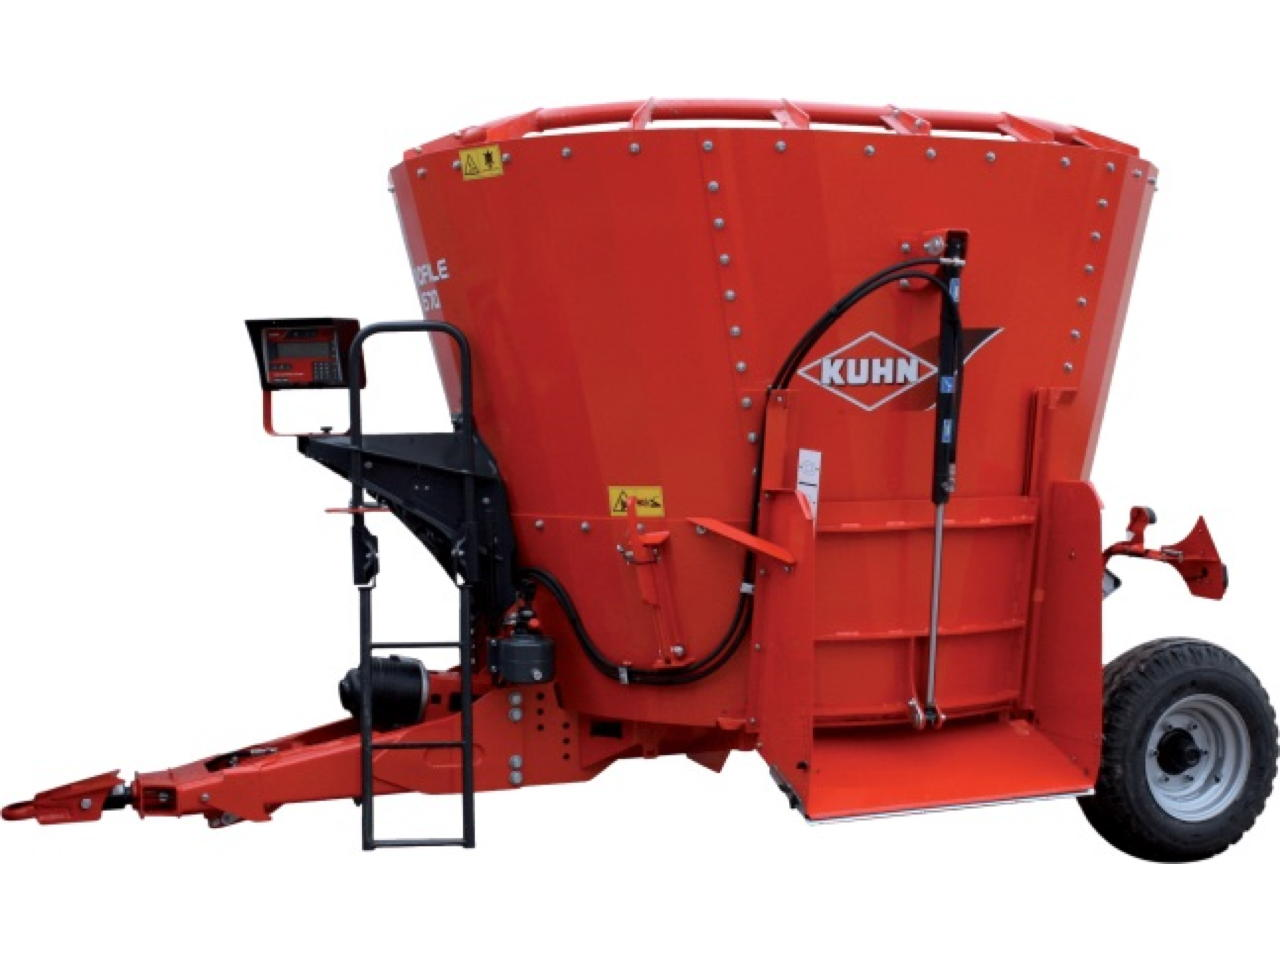 Kuhn Profile 1 DS